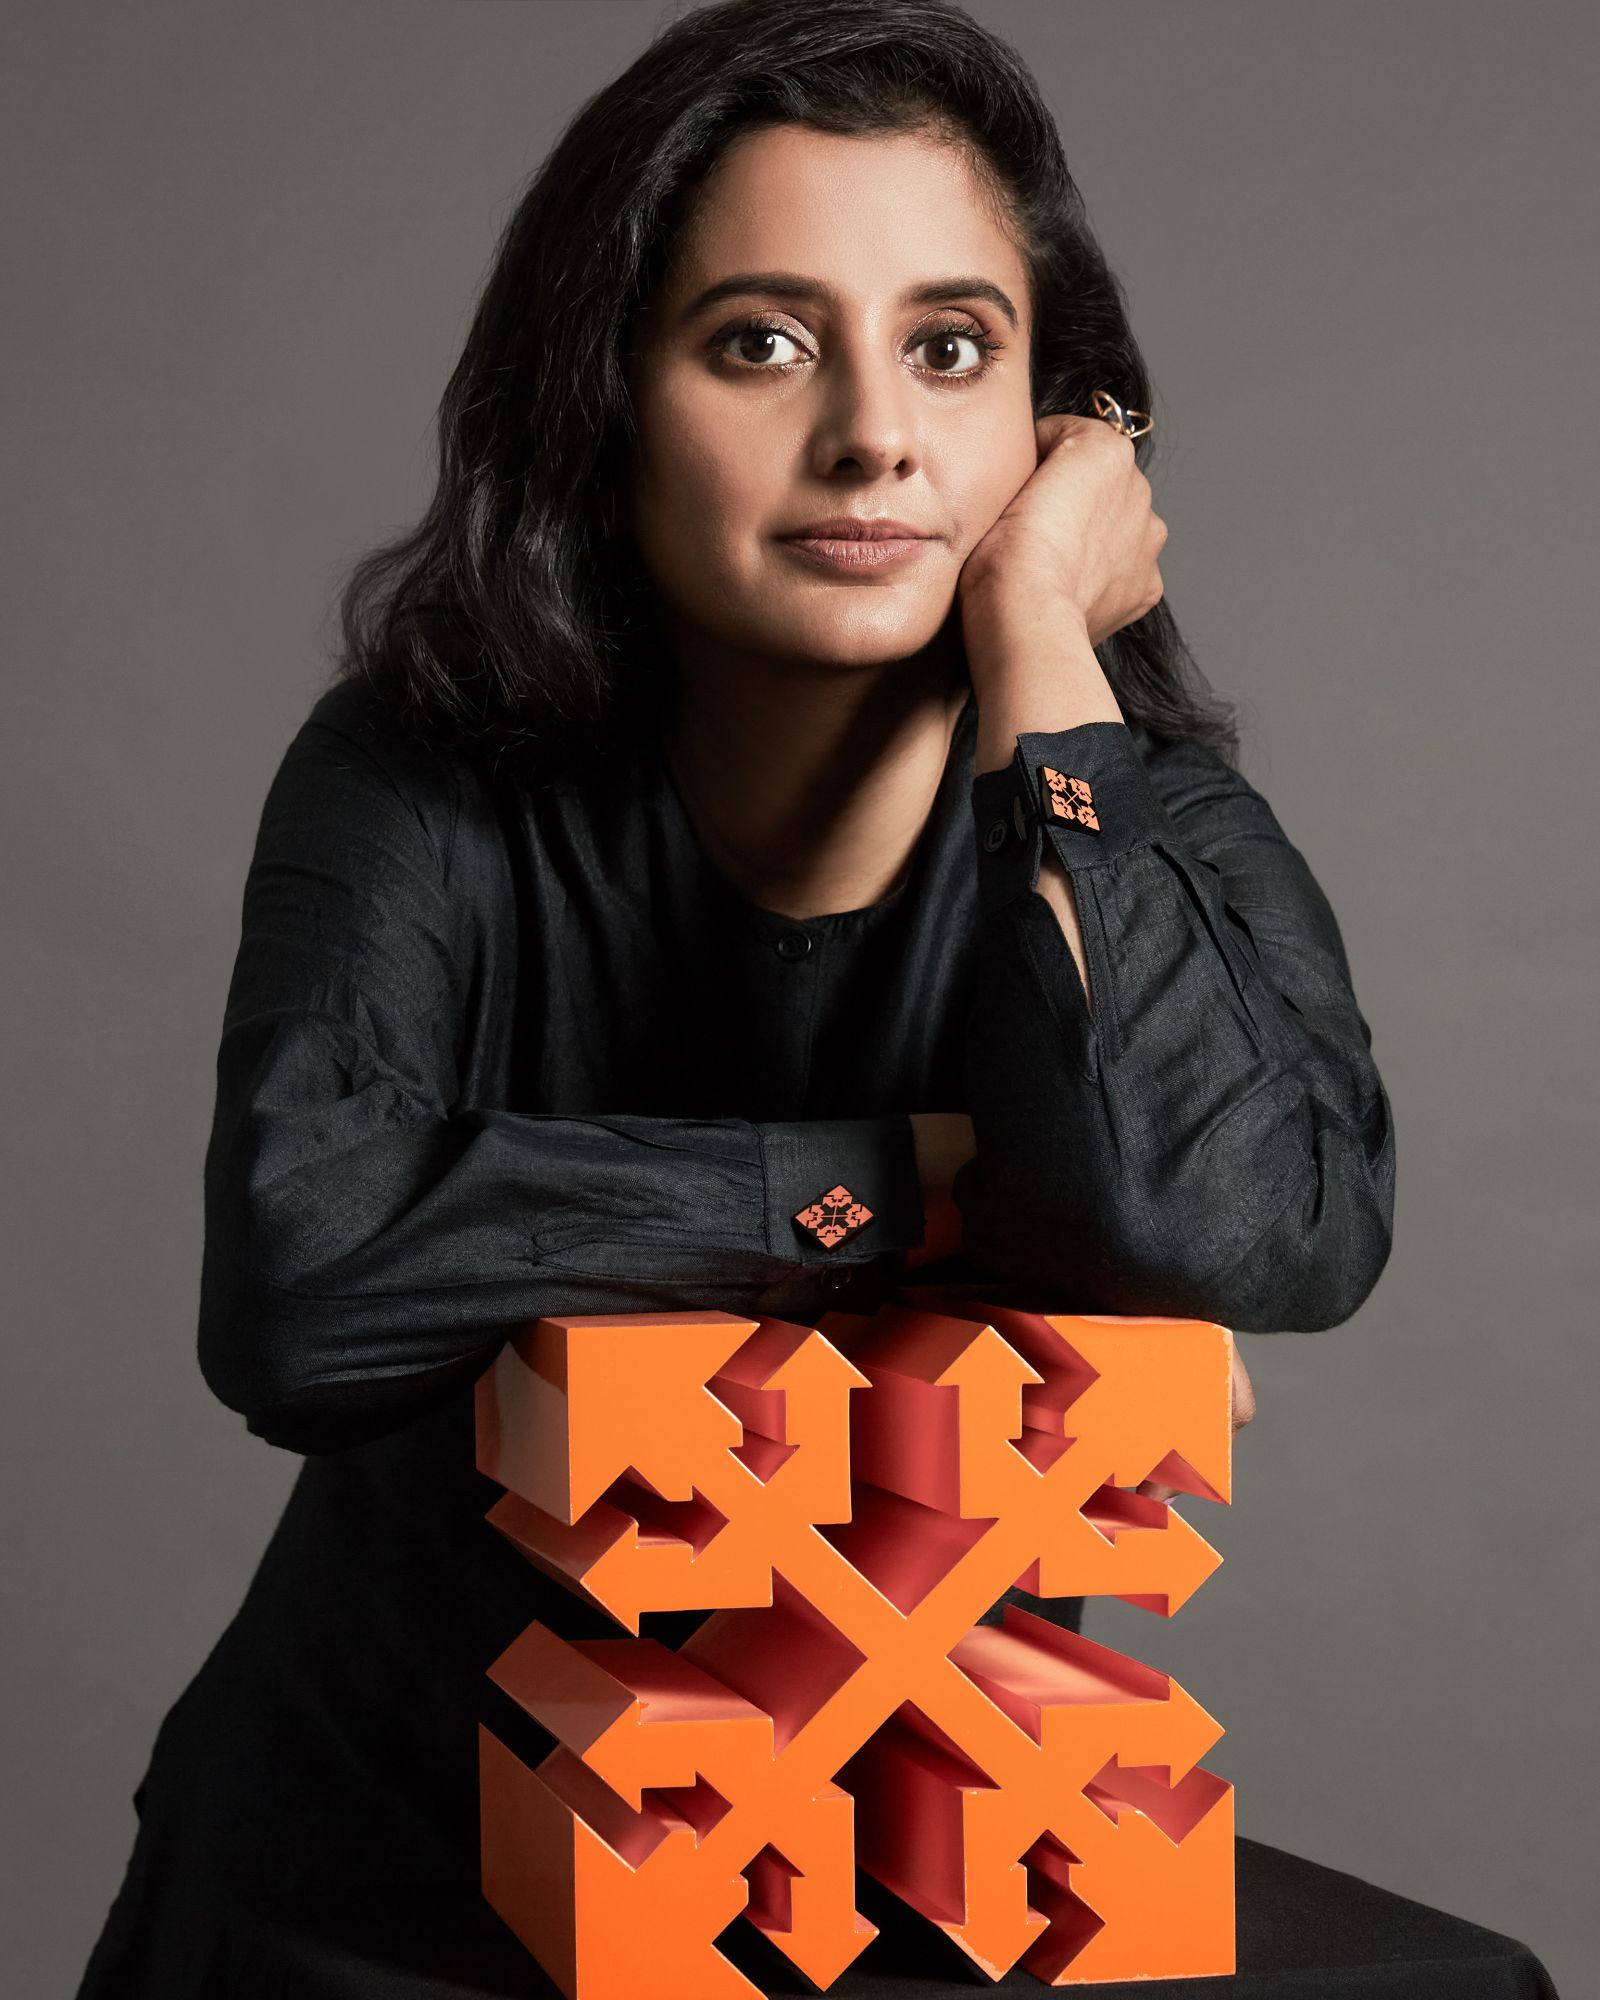 Meet Lakshmi Mohanbabu, the First Singaporean Artist with a Sculpture on the Moon in 2022